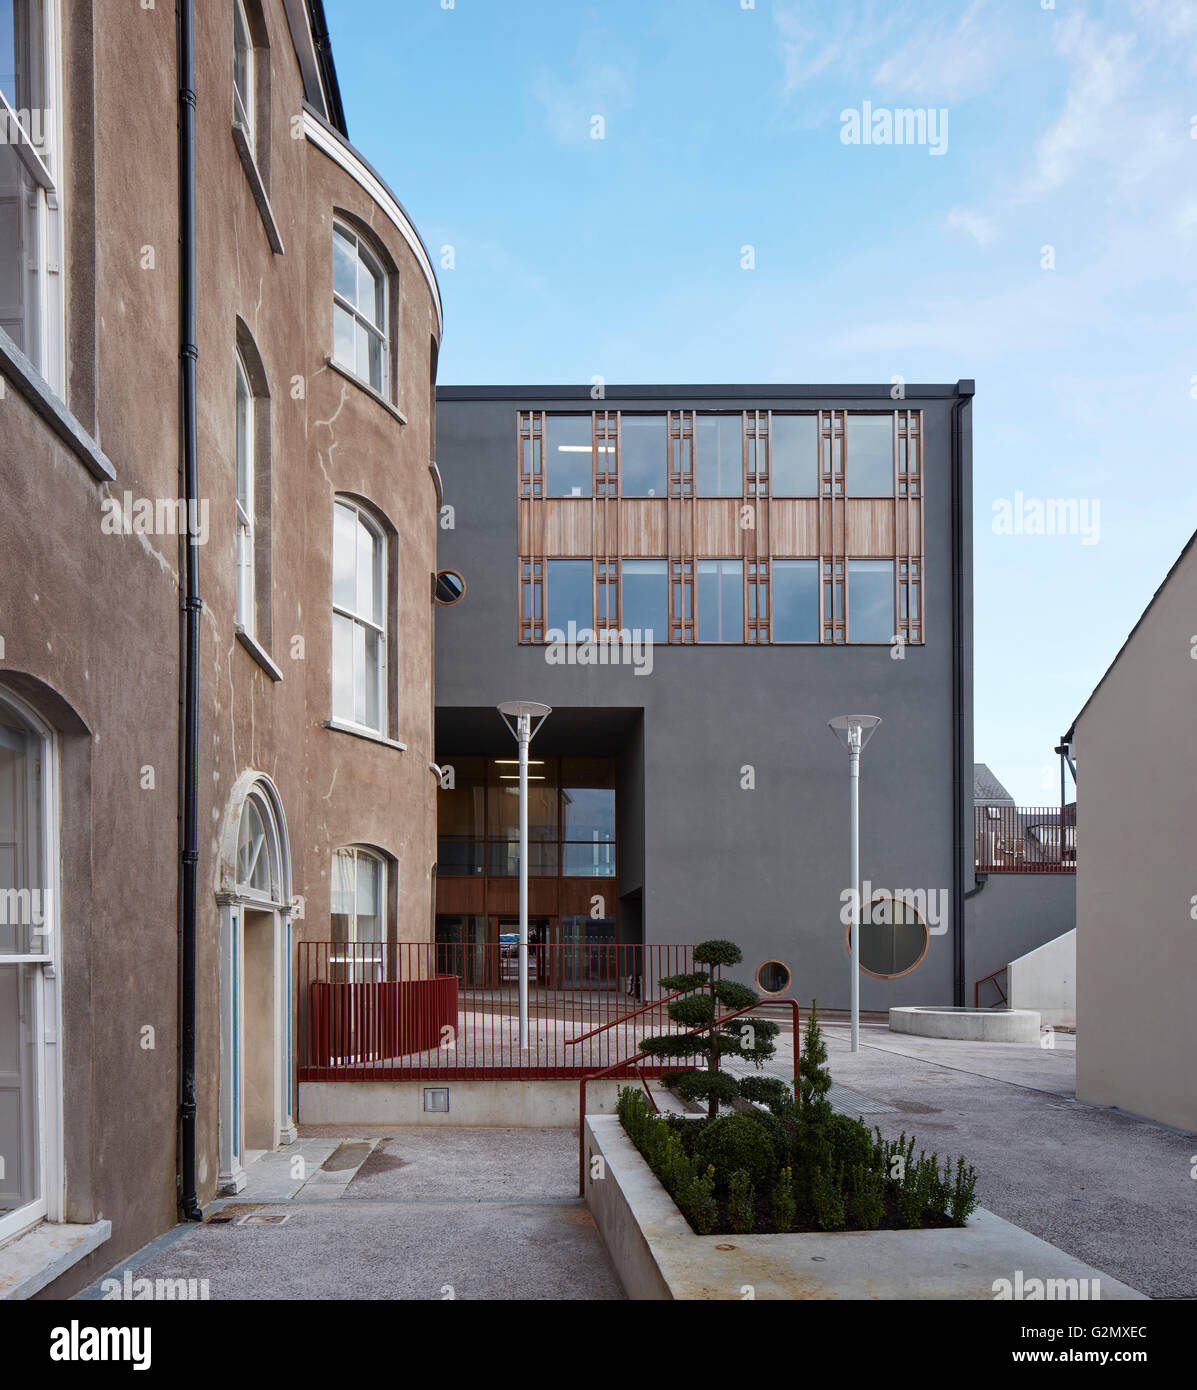 juxtaposition of existing historic facade and new building st angelas college cork cork ireland architect odonnell tuomey architects 2016